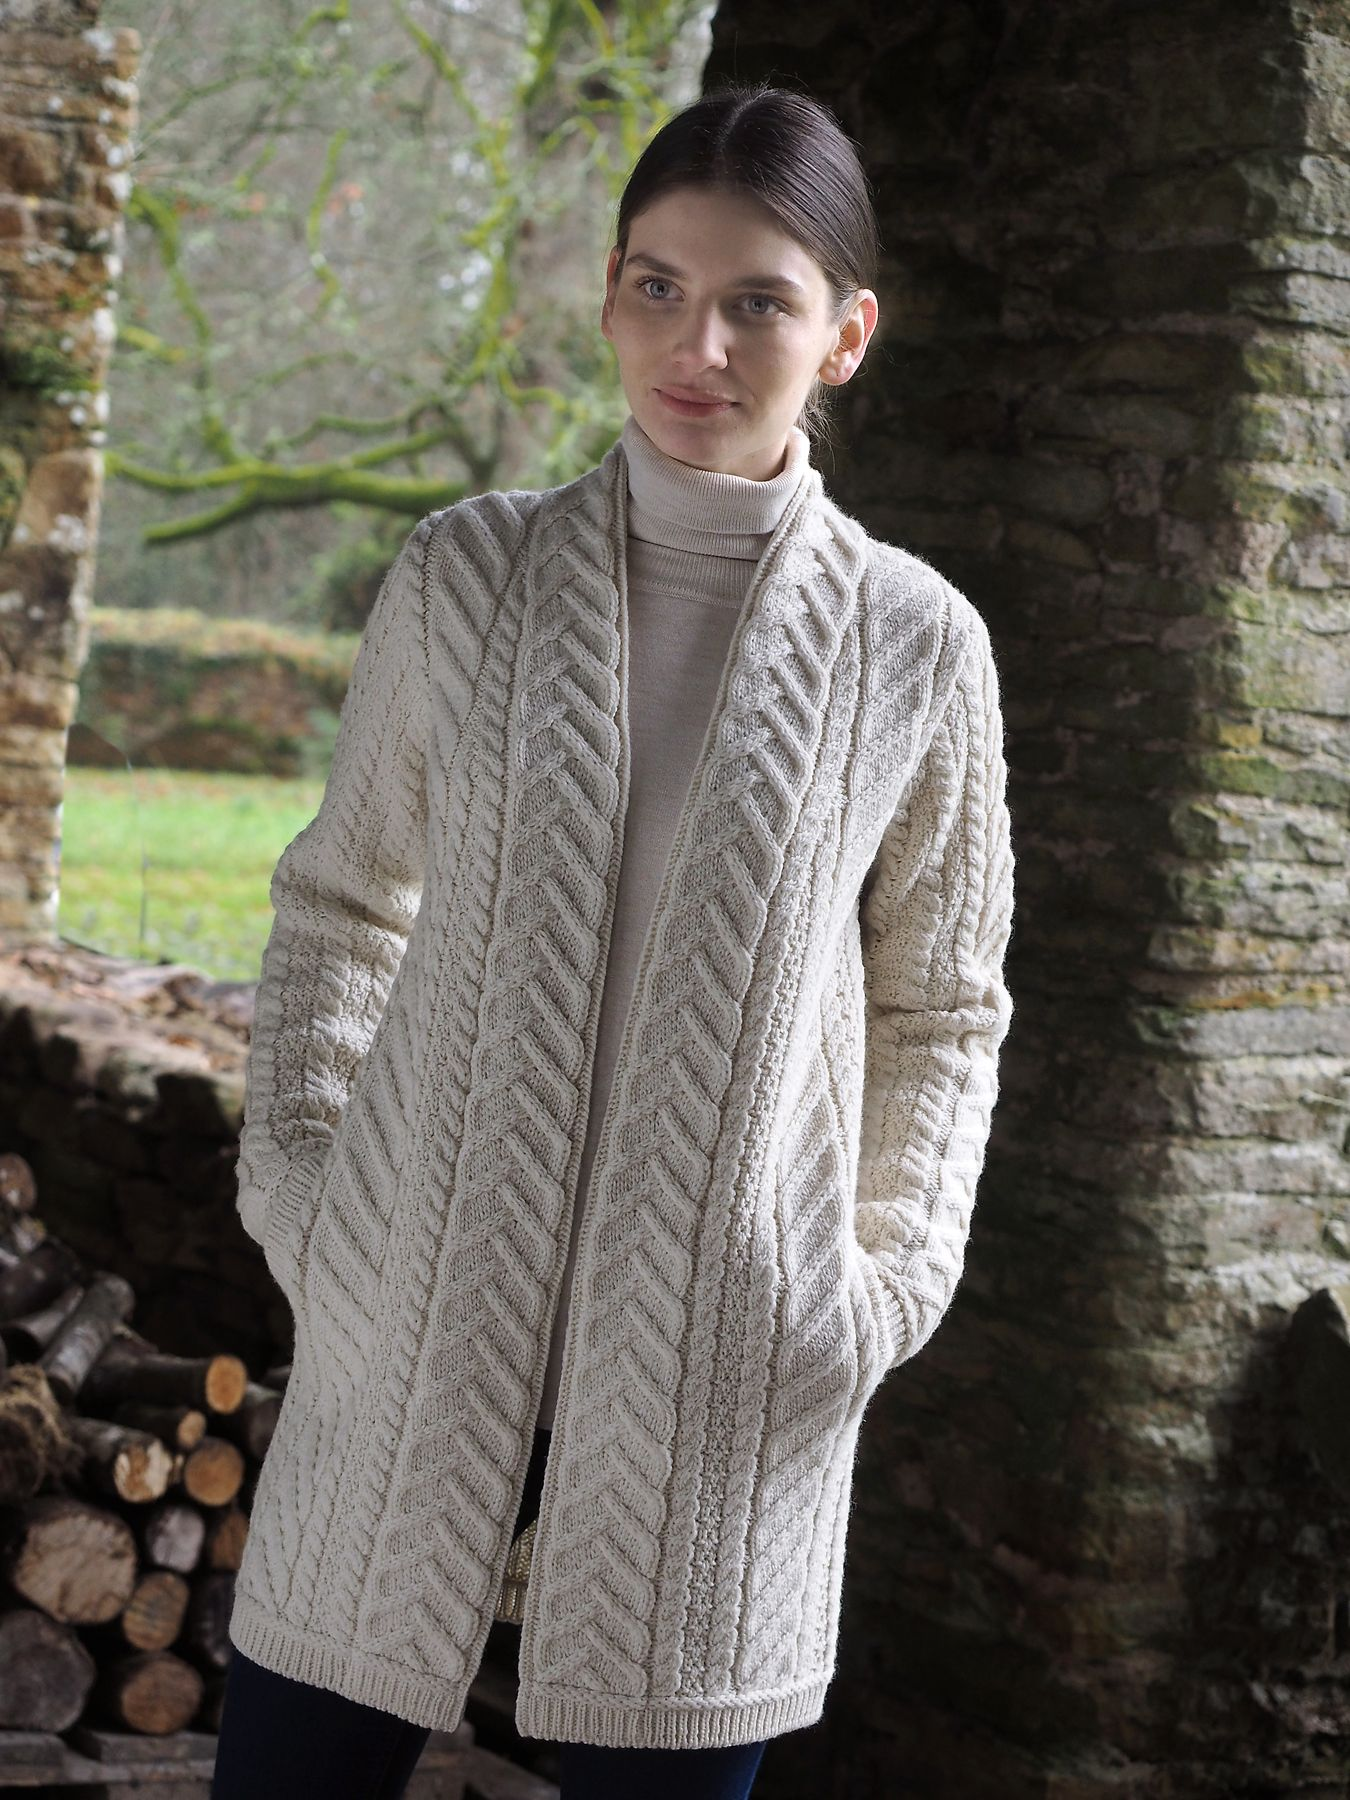 Ladies Shawl Aran Cardigan by Natallia Kulikouskaya for AranCrafts ...